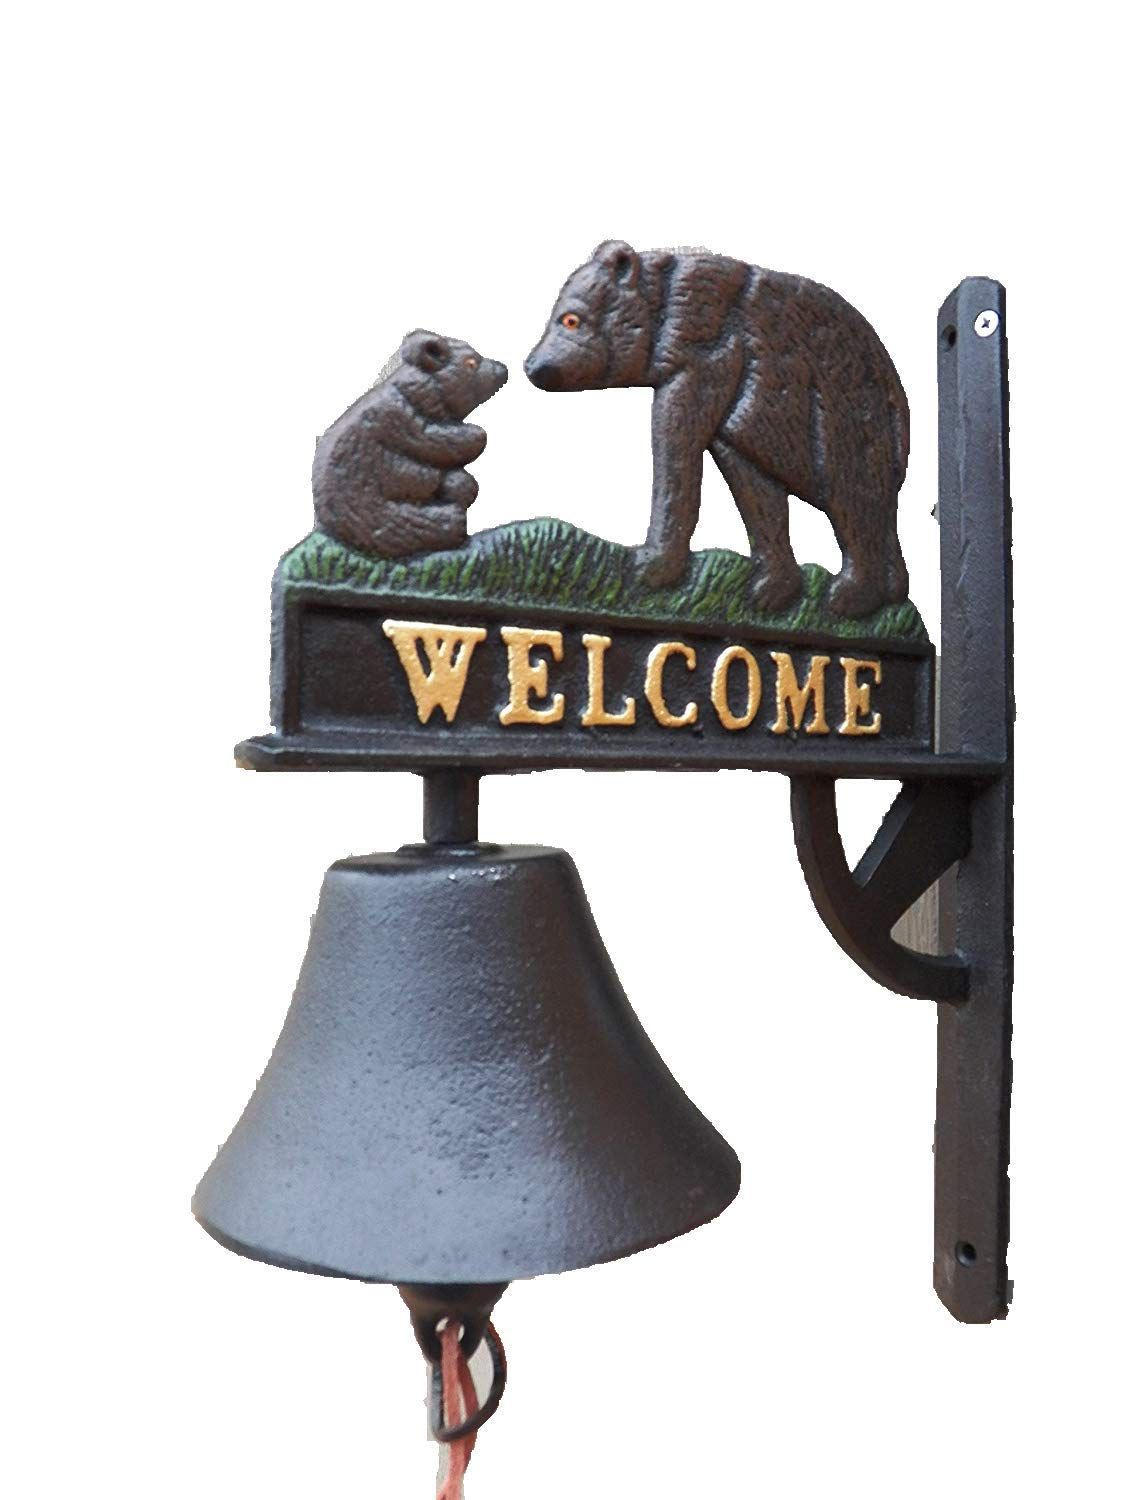 Antique-Style Cast Iron Painted Bears Motif Welcome Dinner Bell Windchime Wind Chime Grizzly by BSA